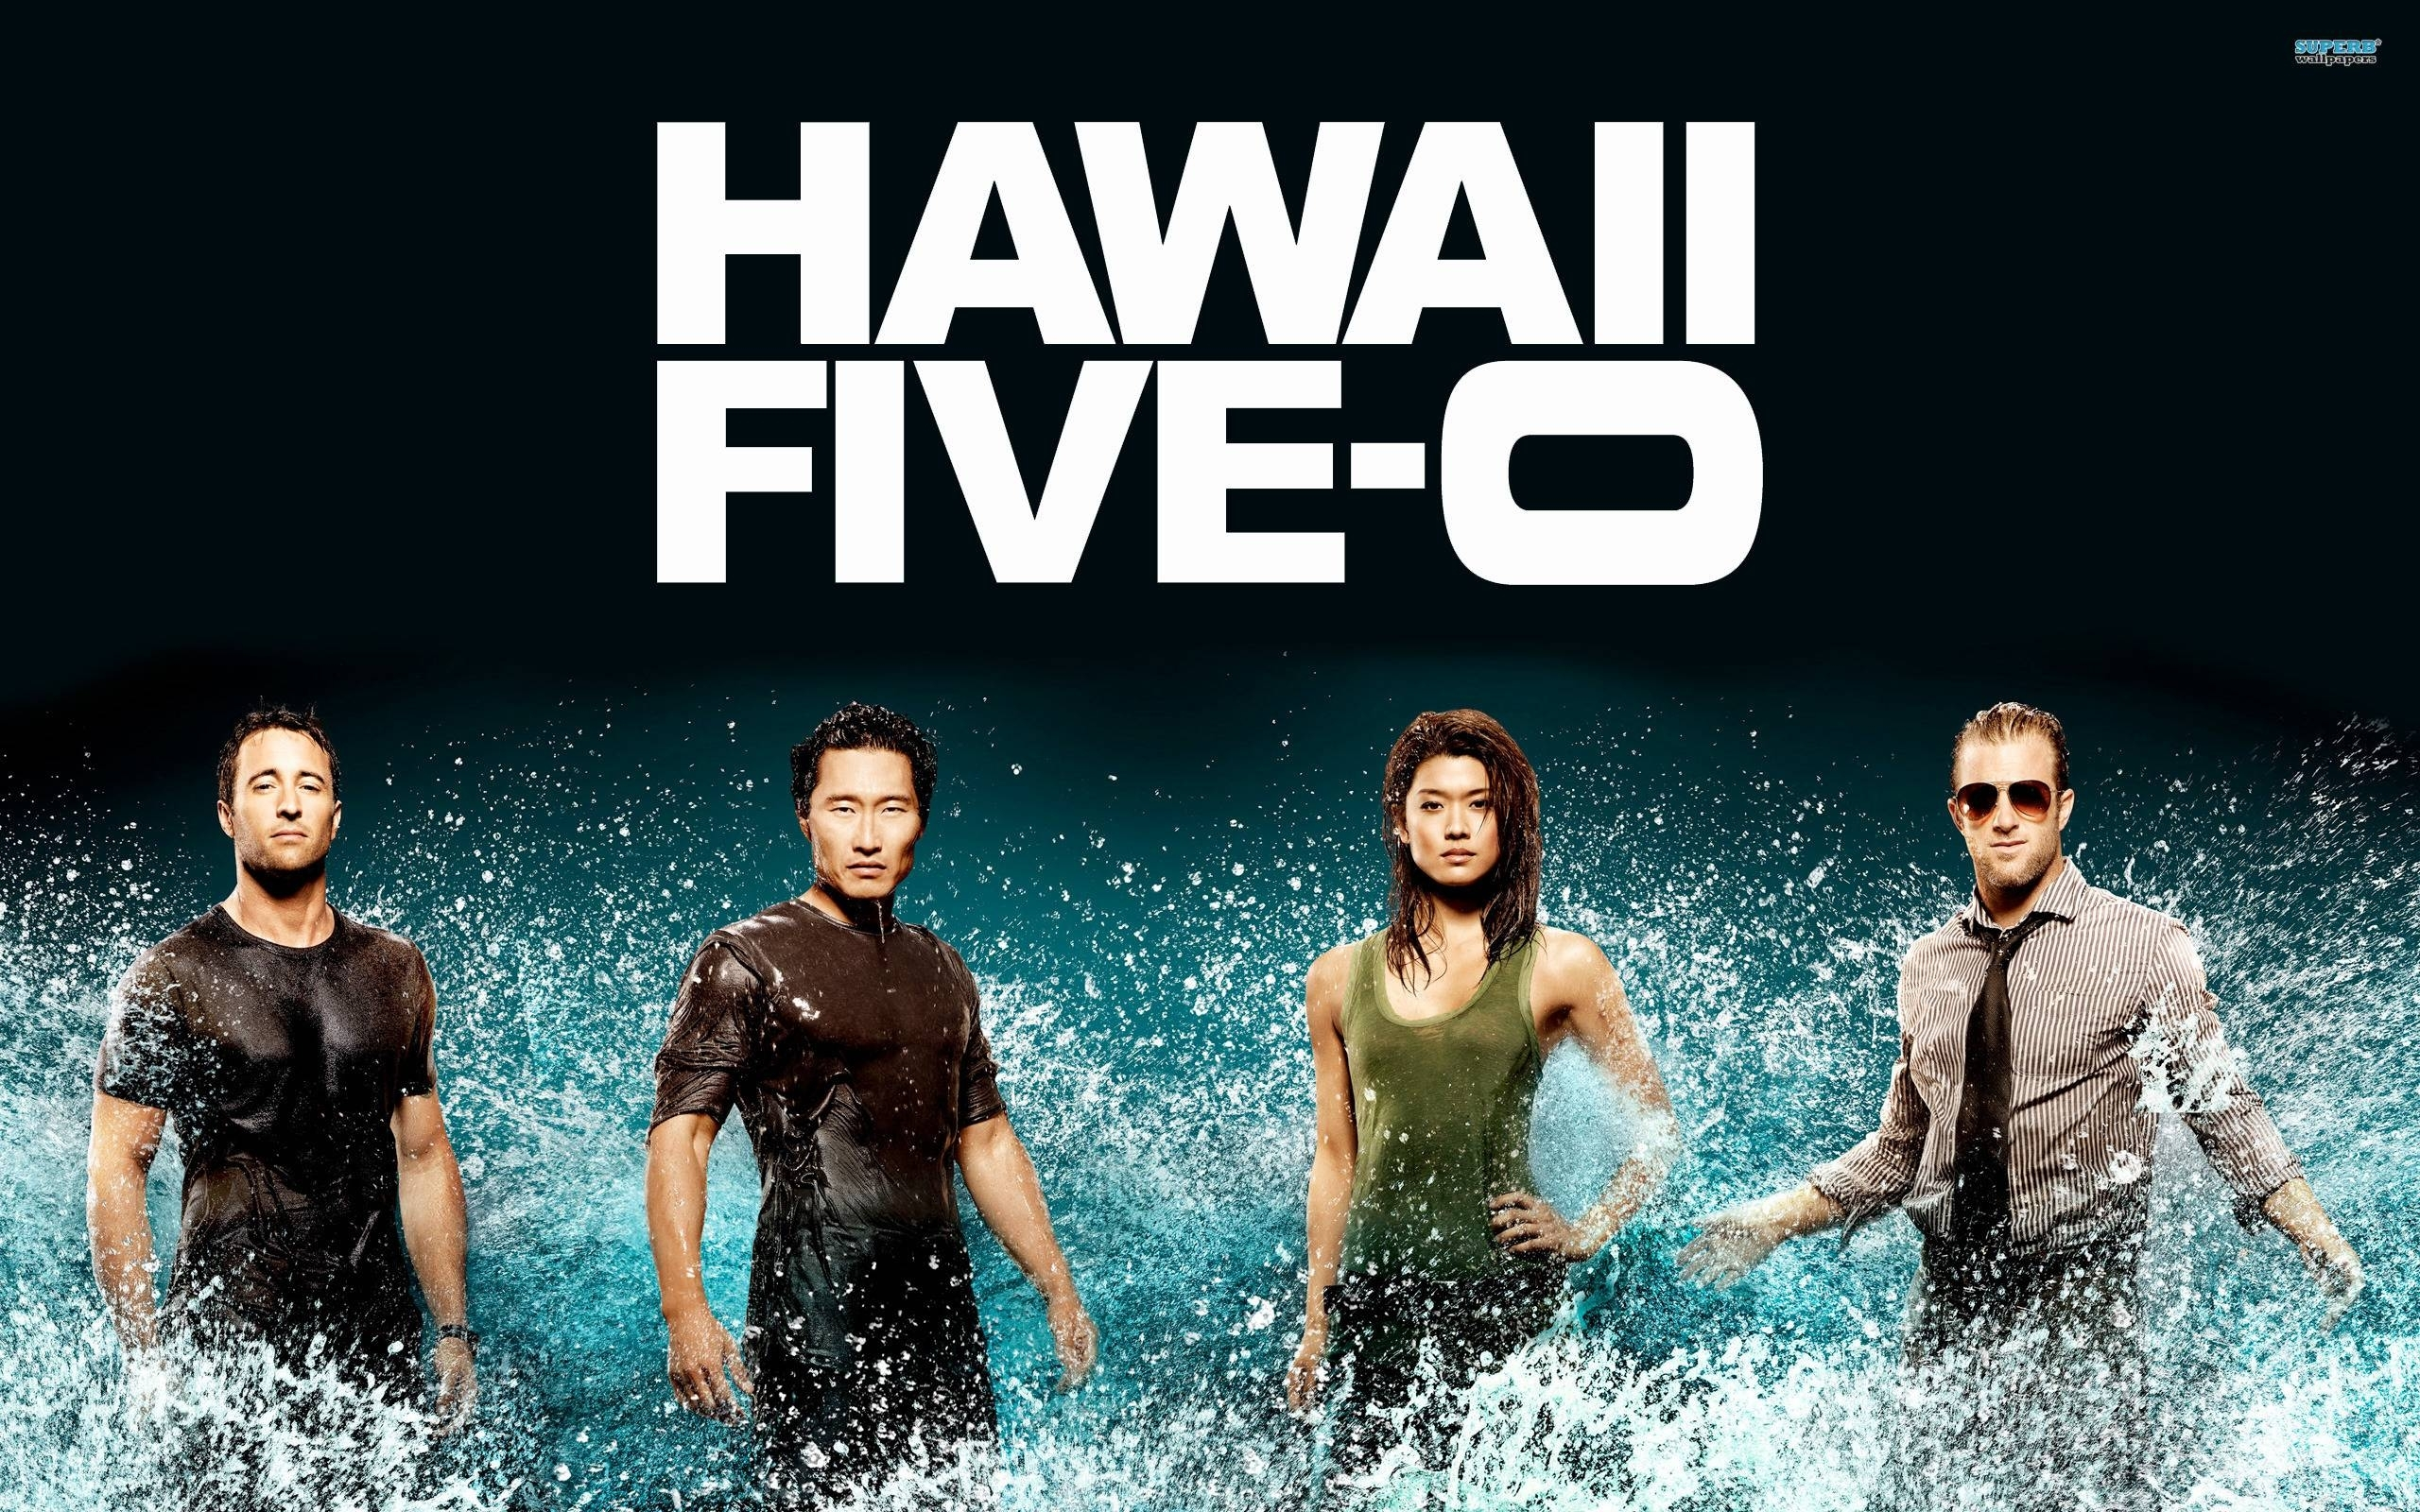 hawaii five-0 wallpapers - wallpaper cave